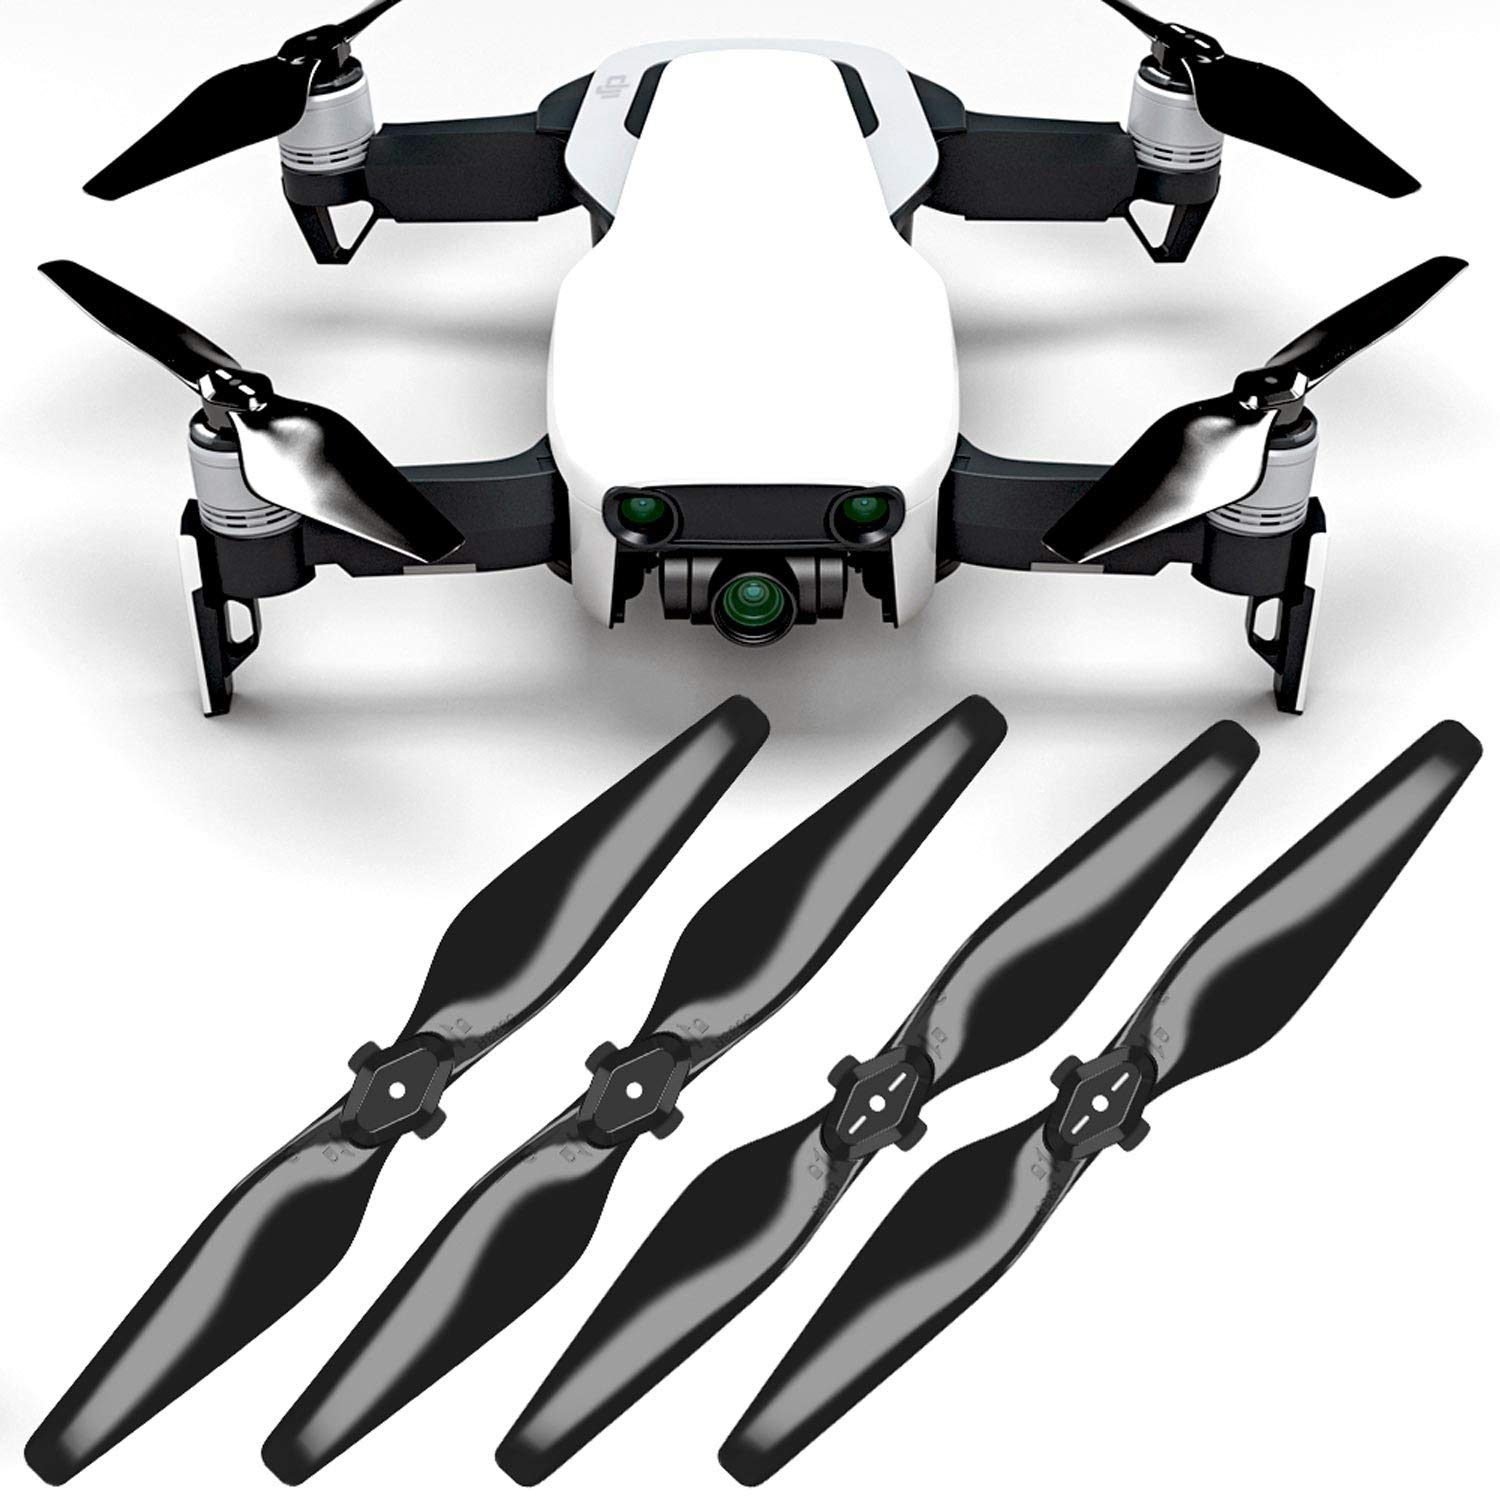 MAS Upgrade Propellers for DJI Mavic AIR in Black - x4 in Set by Master Airscrew (Image #3)